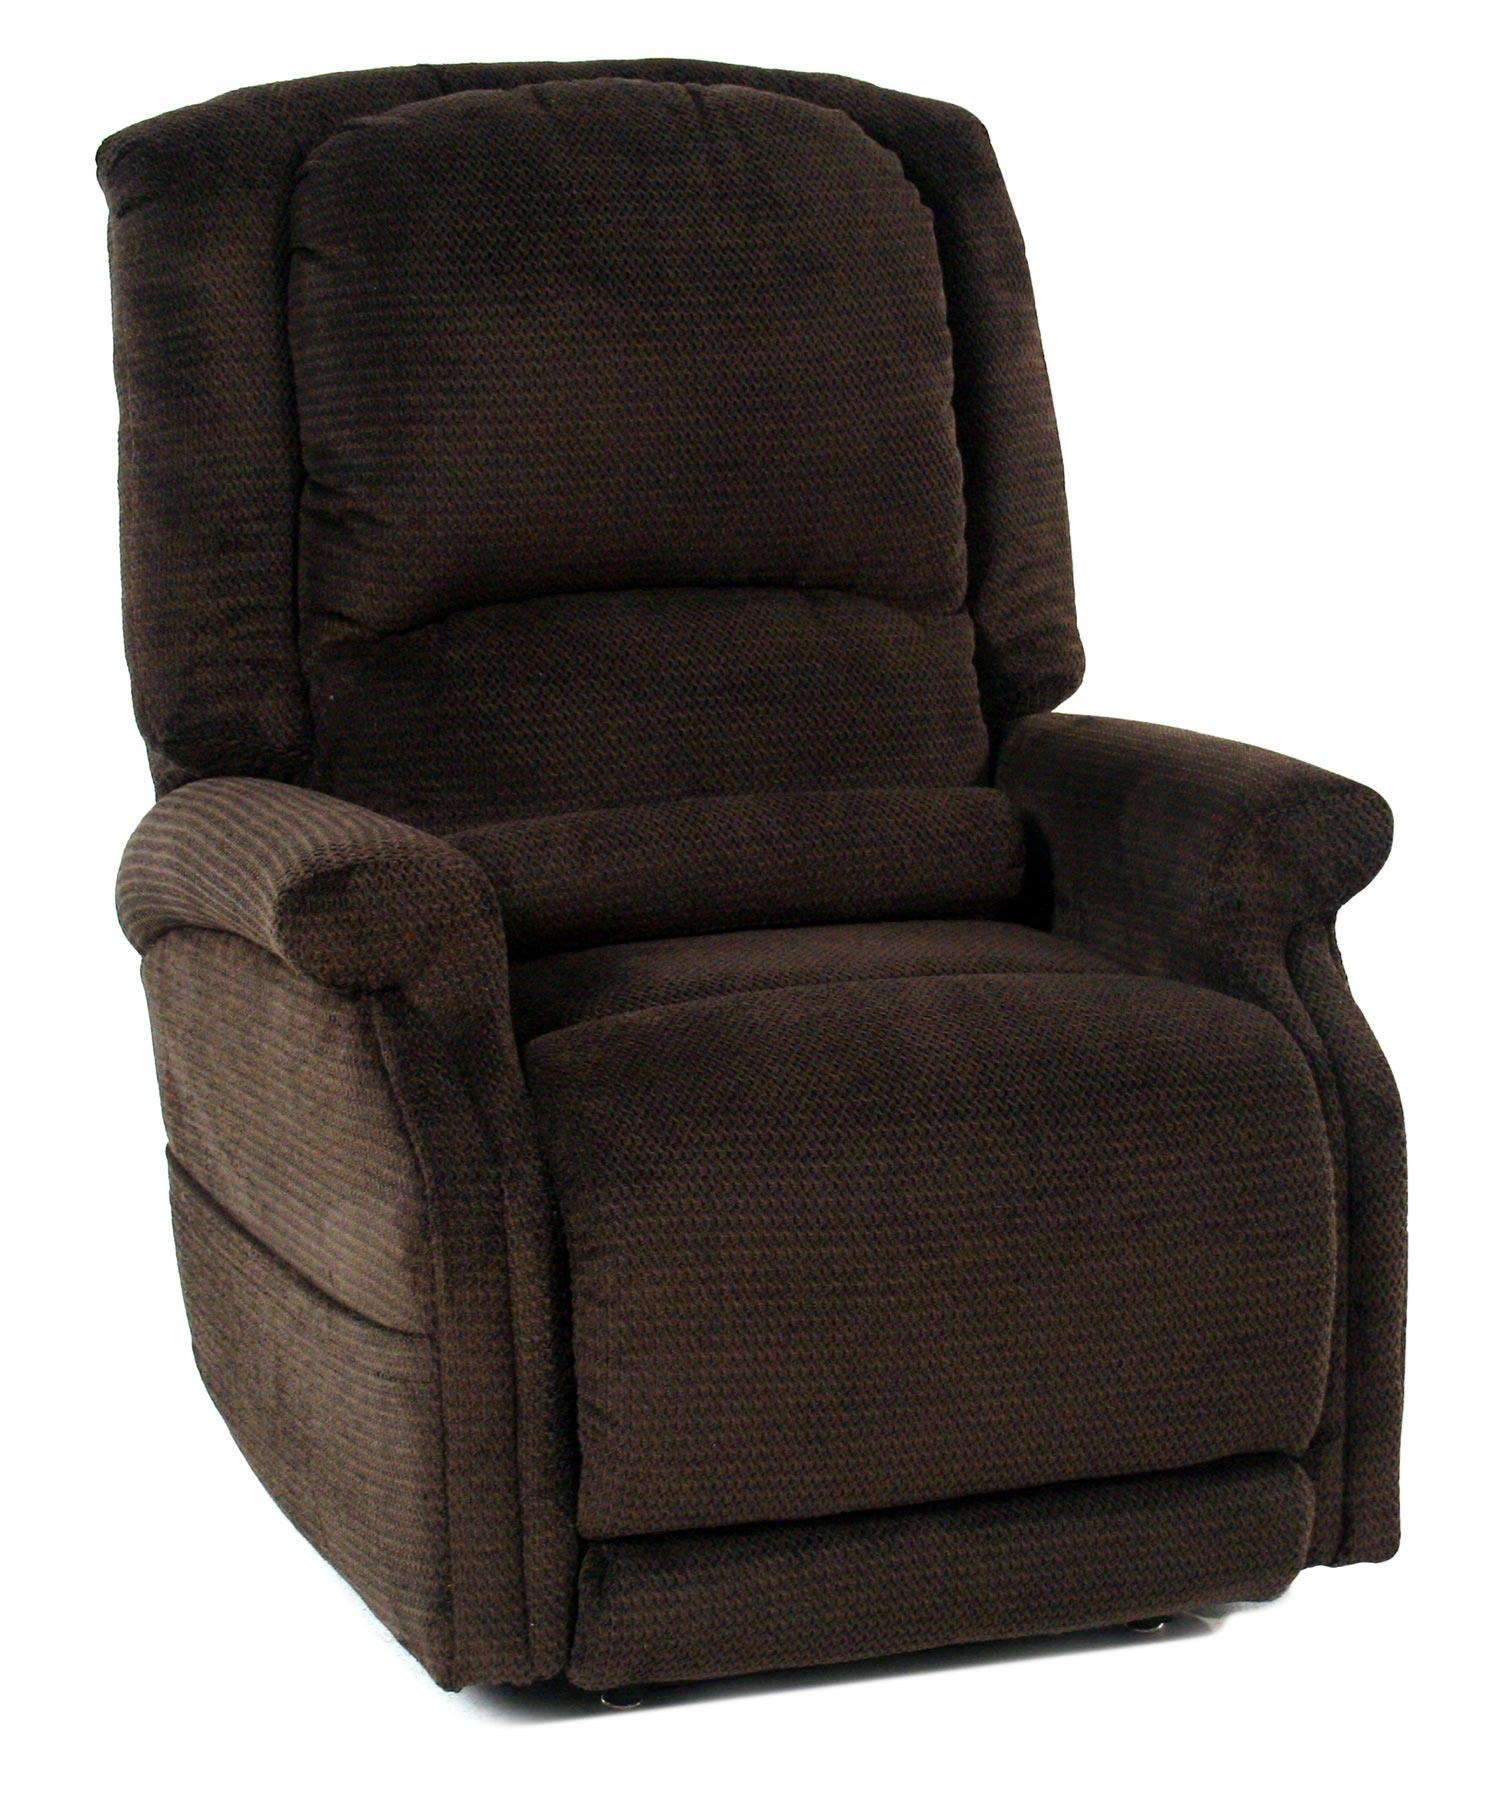 Zero Gravity Lift Chair Lift Chairs Stardust Zero Gravity Chaise Lounger Rotmans